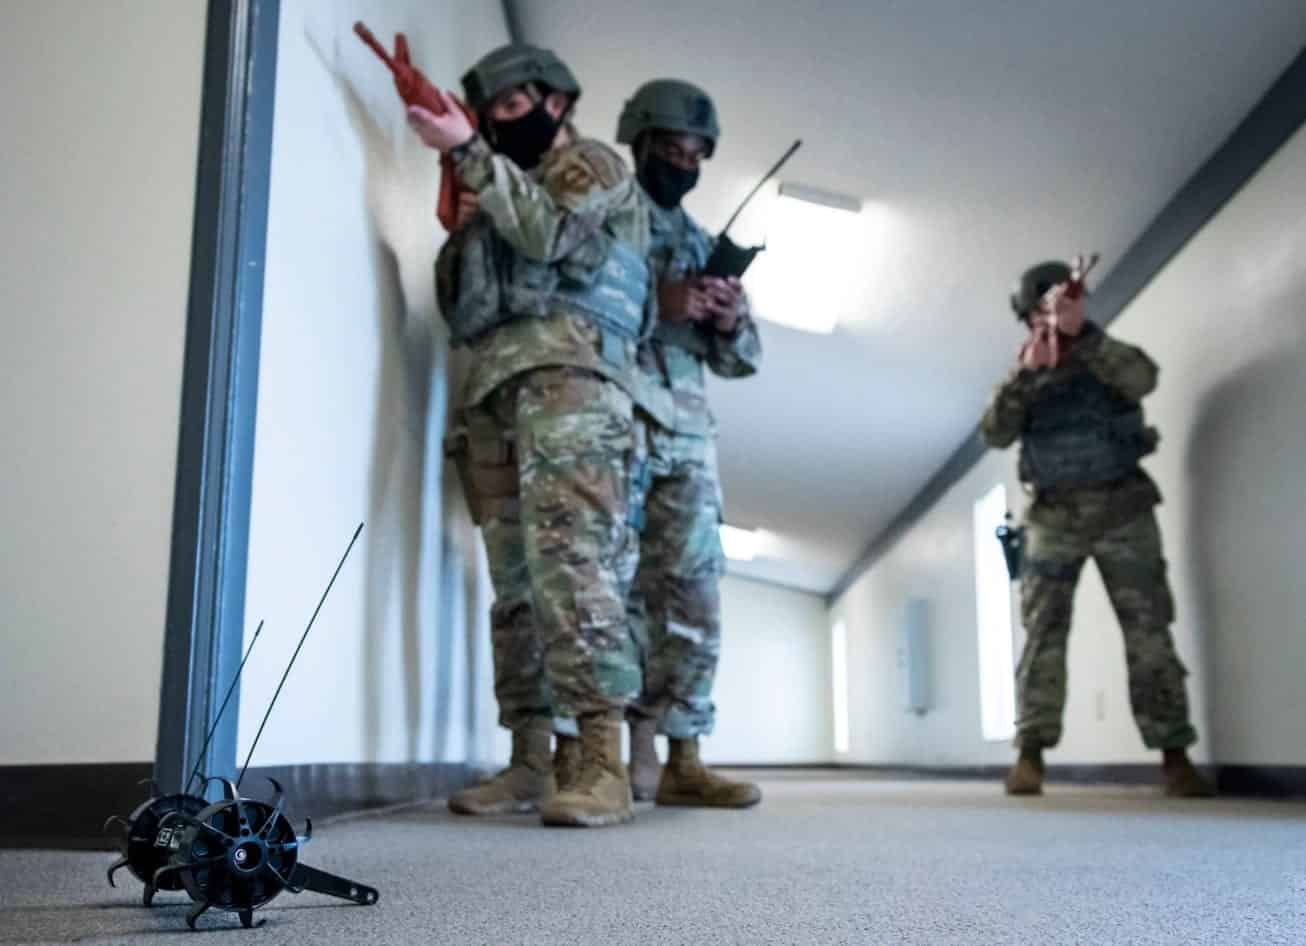 Football-sized drone, Throwbot used by U.S. Air Force for base security